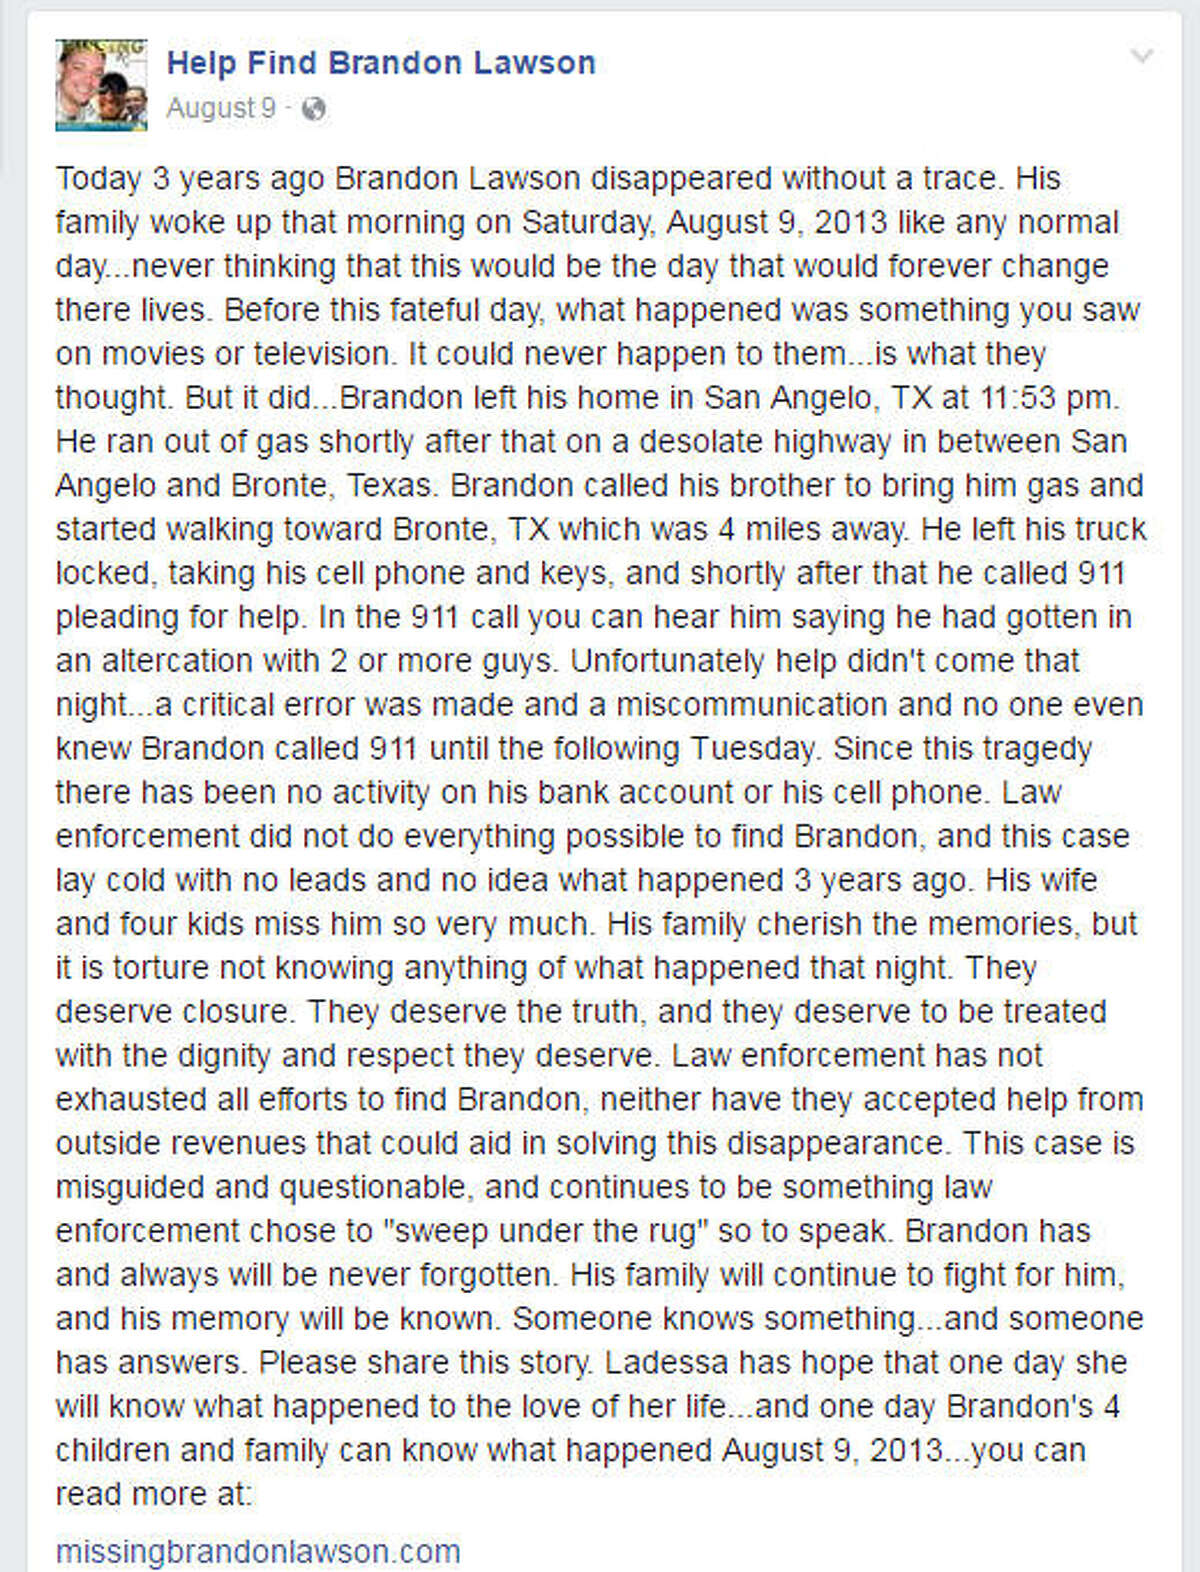 Telling the story Family and friends of Brandon Lawson, a San Angelo man last seen in August 2013, set up a Facebook page to solicit tips and keep his case alive.